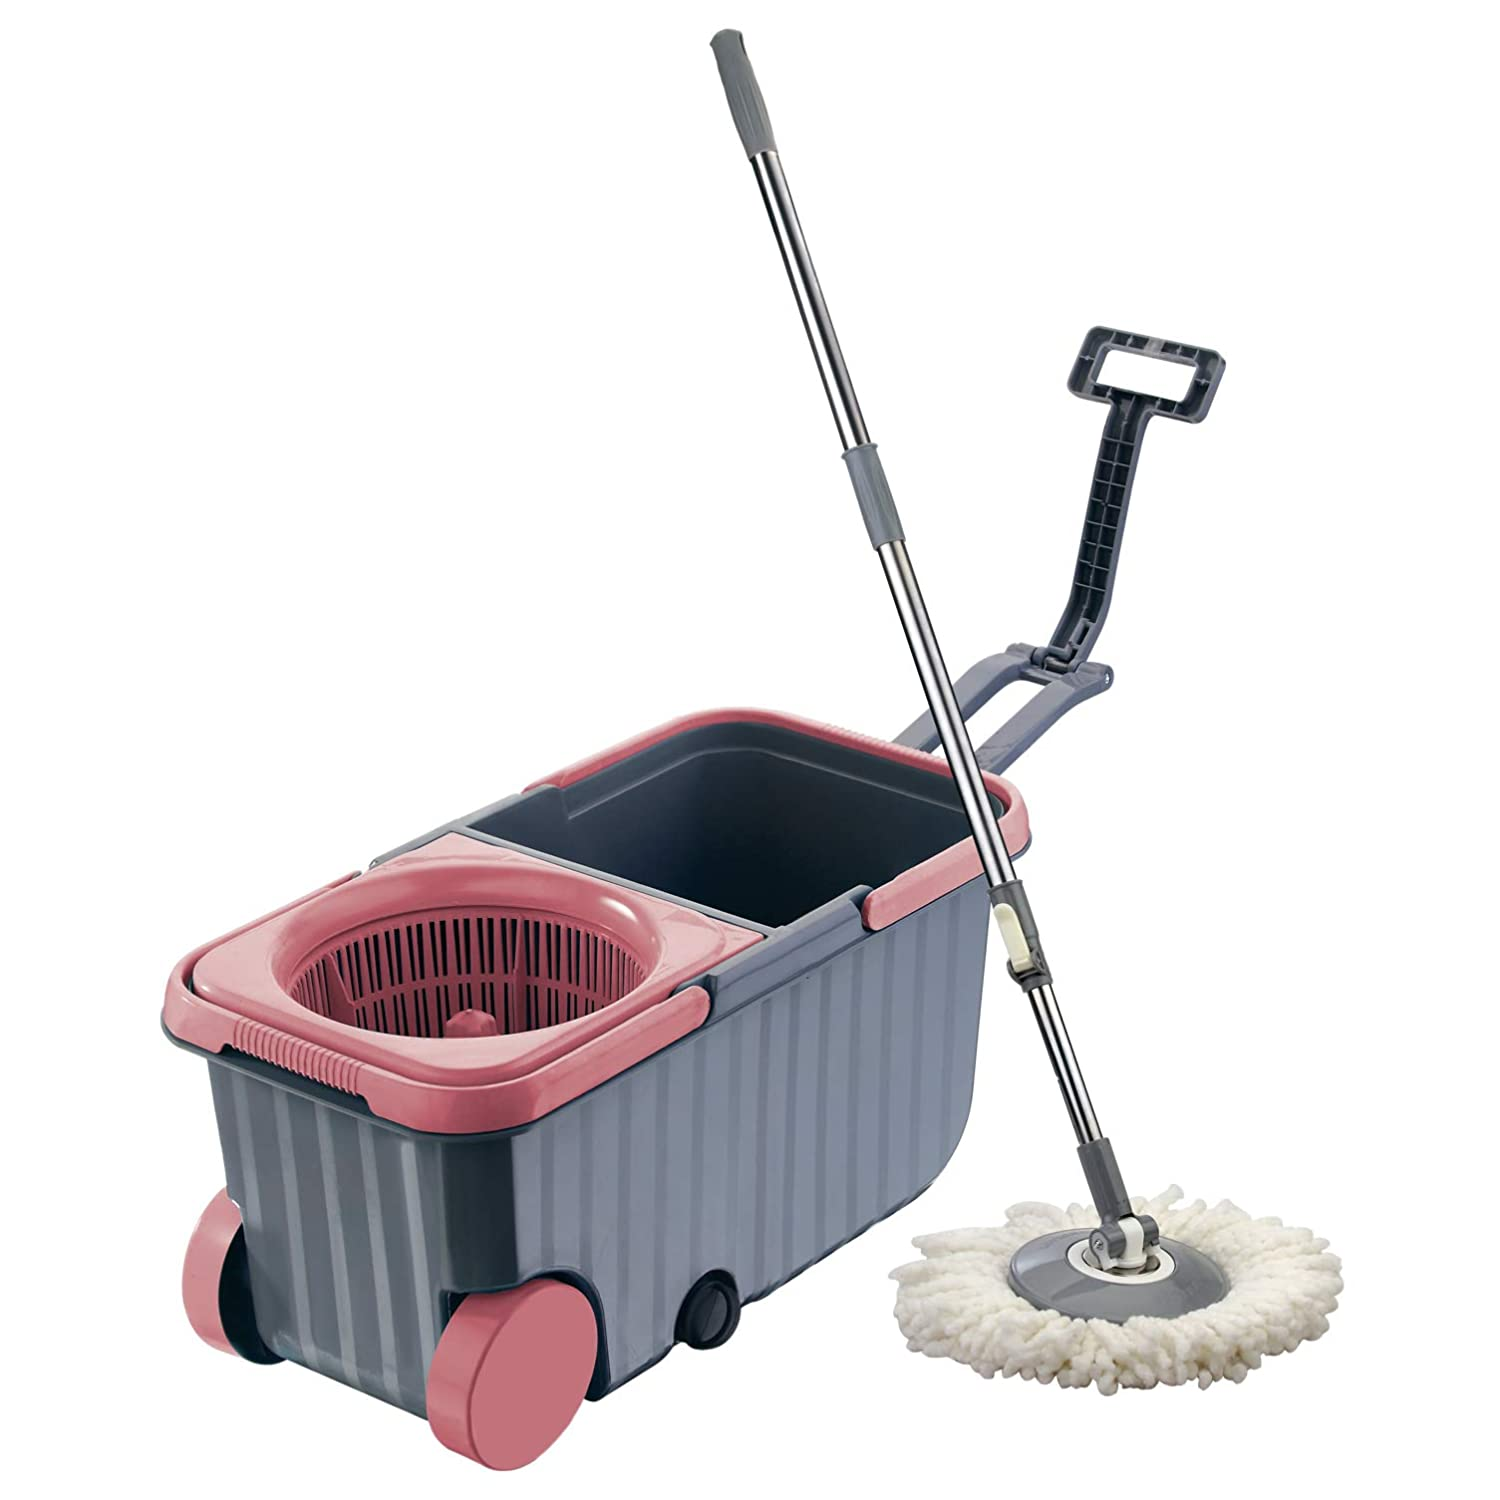 Polyset Dual Mop Bucket Set with Wheels for ₹686